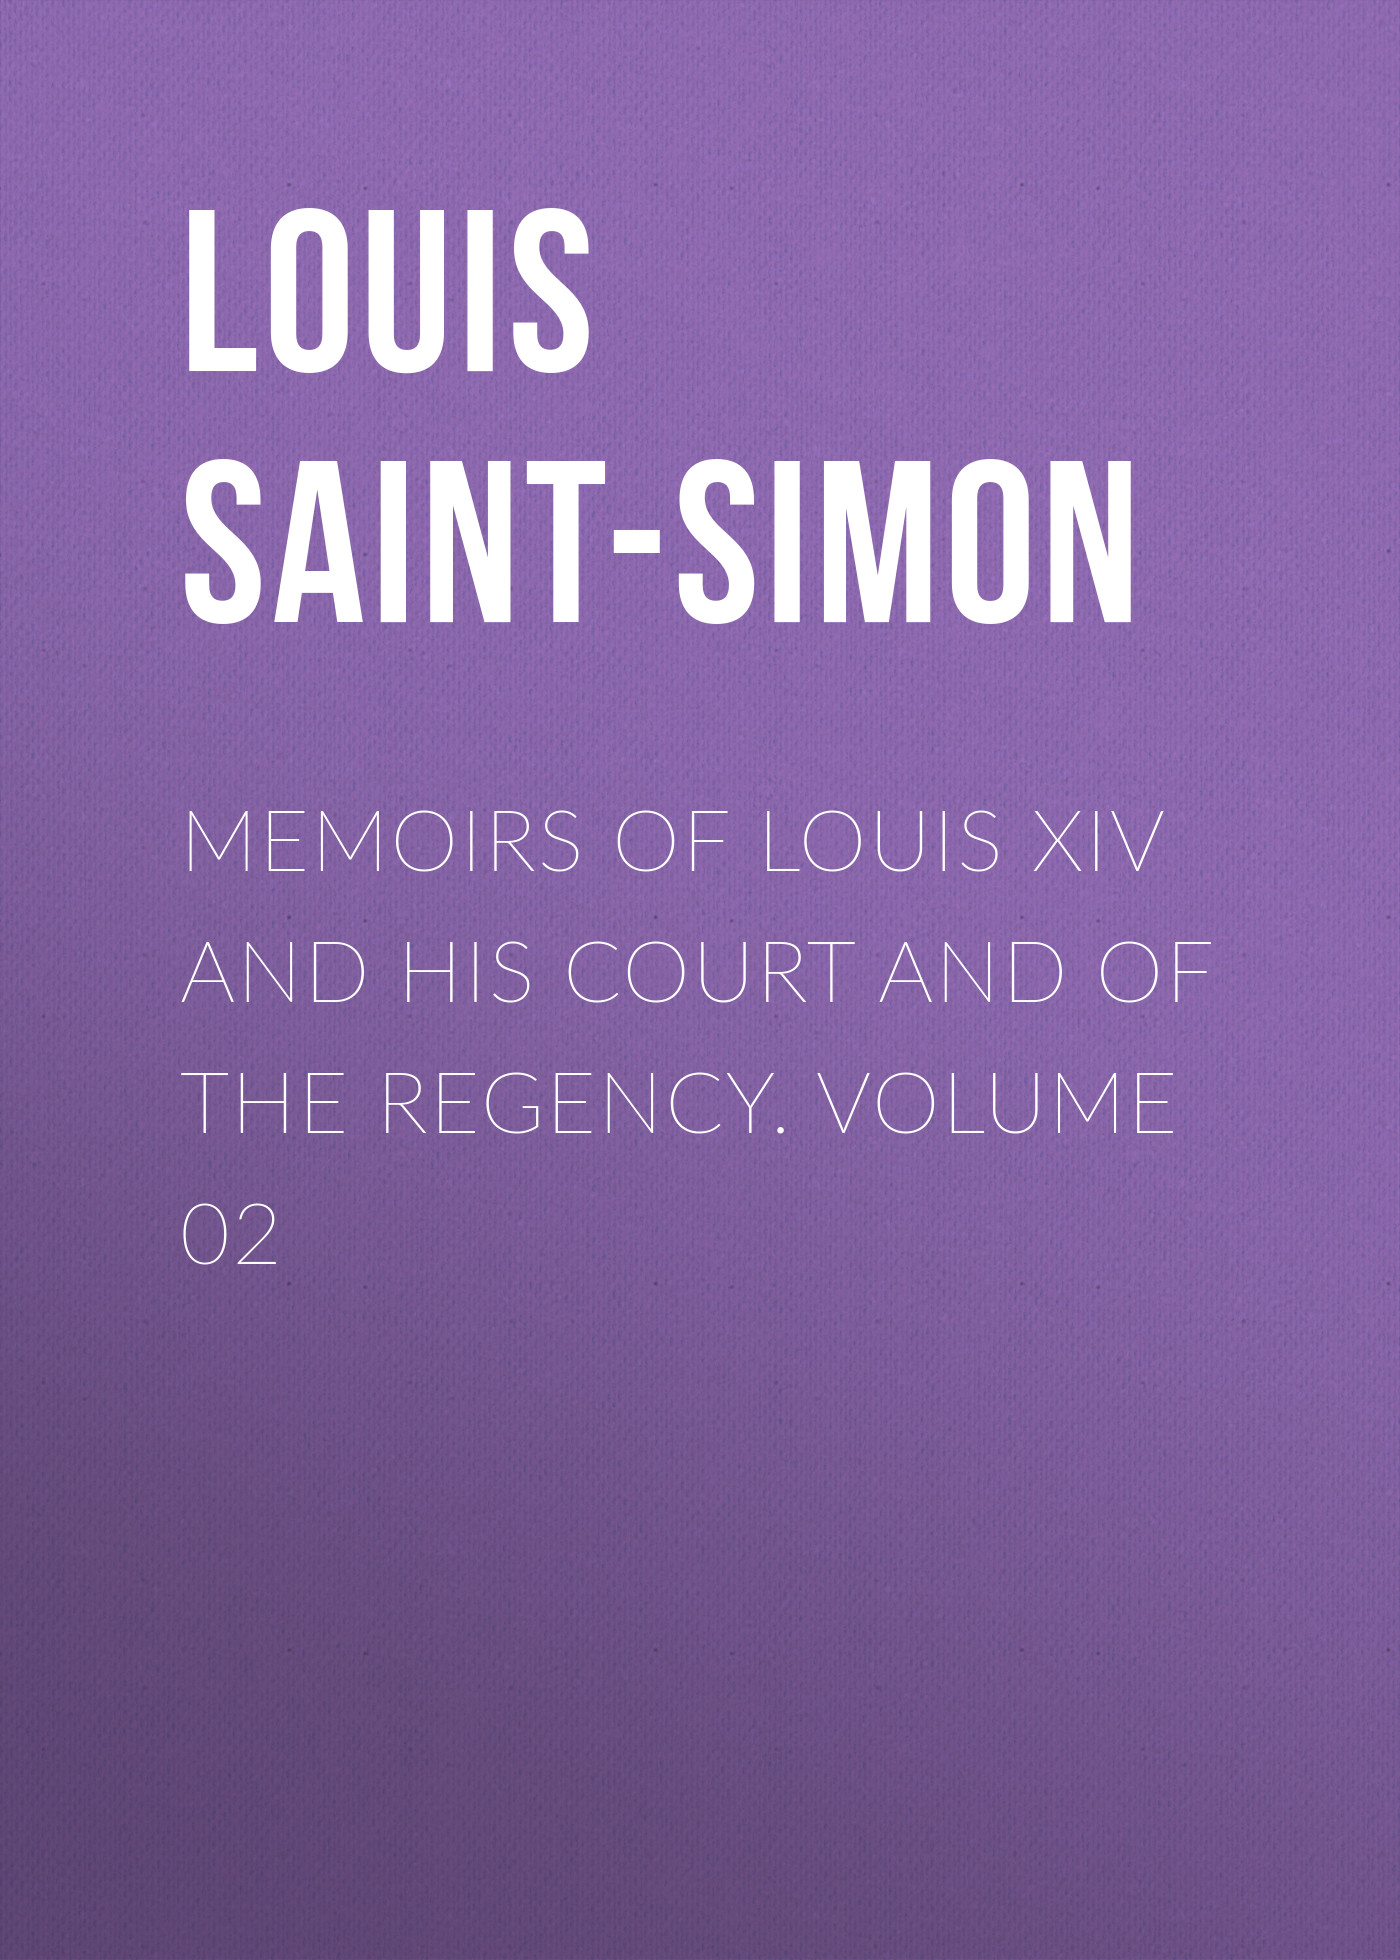 Фото - Louis Saint-Simon Memoirs of Louis XIV and His Court and of the Regency. Volume 02 jules marcou life letters and works of louis agassiz volume i